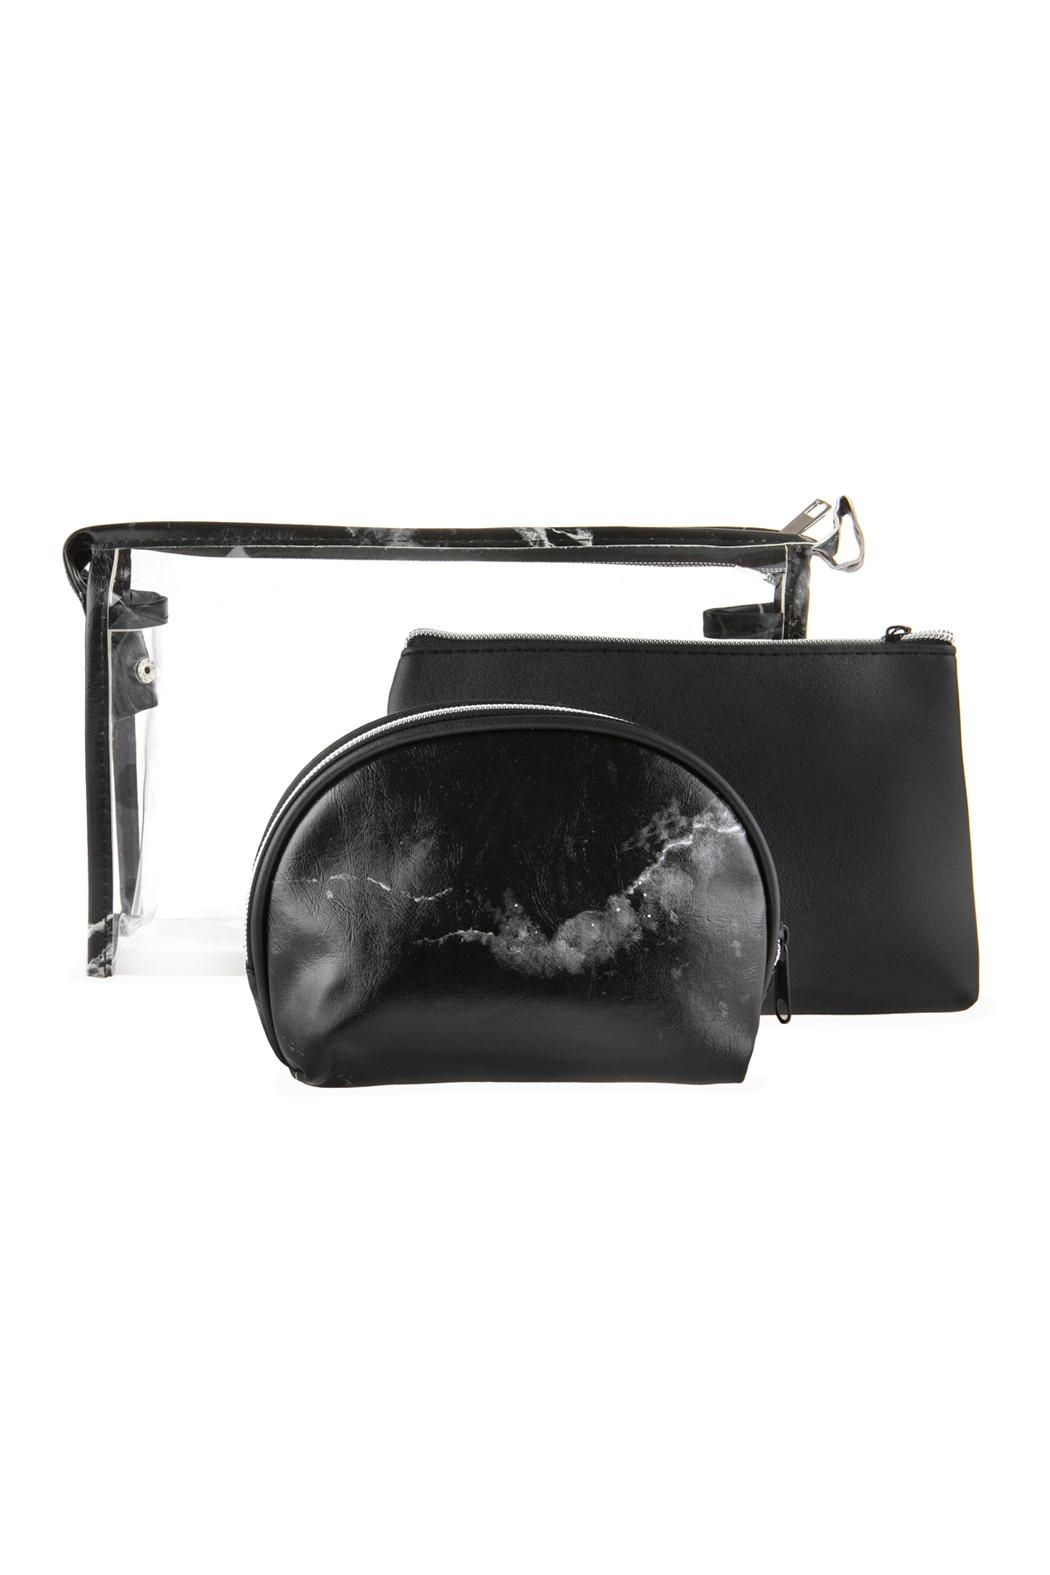 Riah Fashion Clear-Cosmetic-Bags With 2-Sets-Of-Leather-Pouches - Main Image